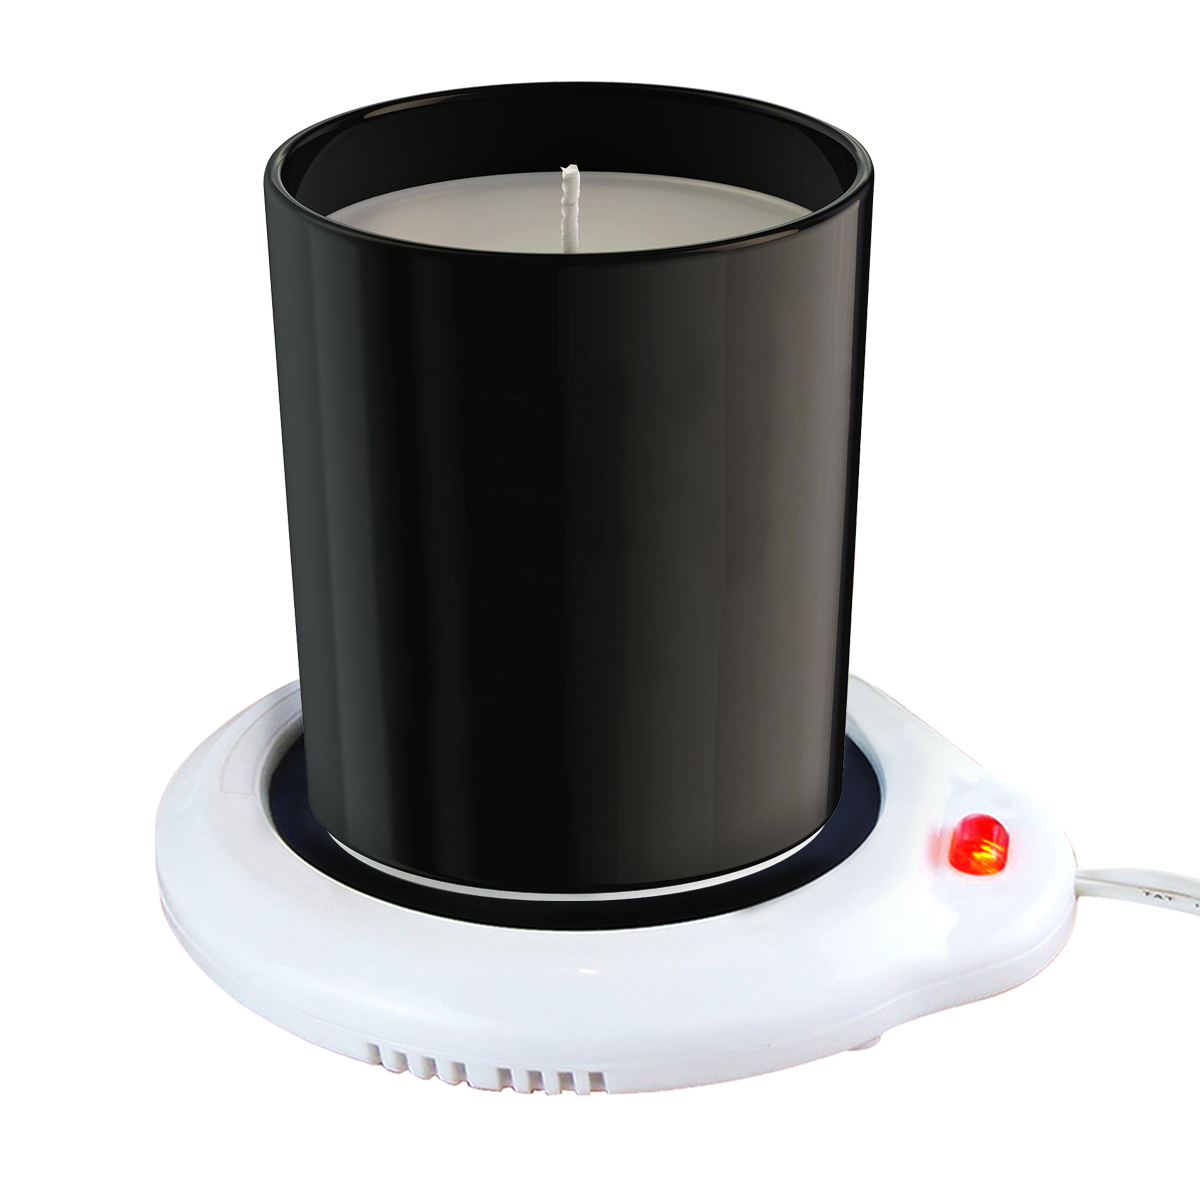 [REDshield] Desktop Cup Warmer, Electric Mug Beverage Warmer for Home or Office - Perfect for Coffee, Tea, Cocoa, Soup, Scented Candles or Wax